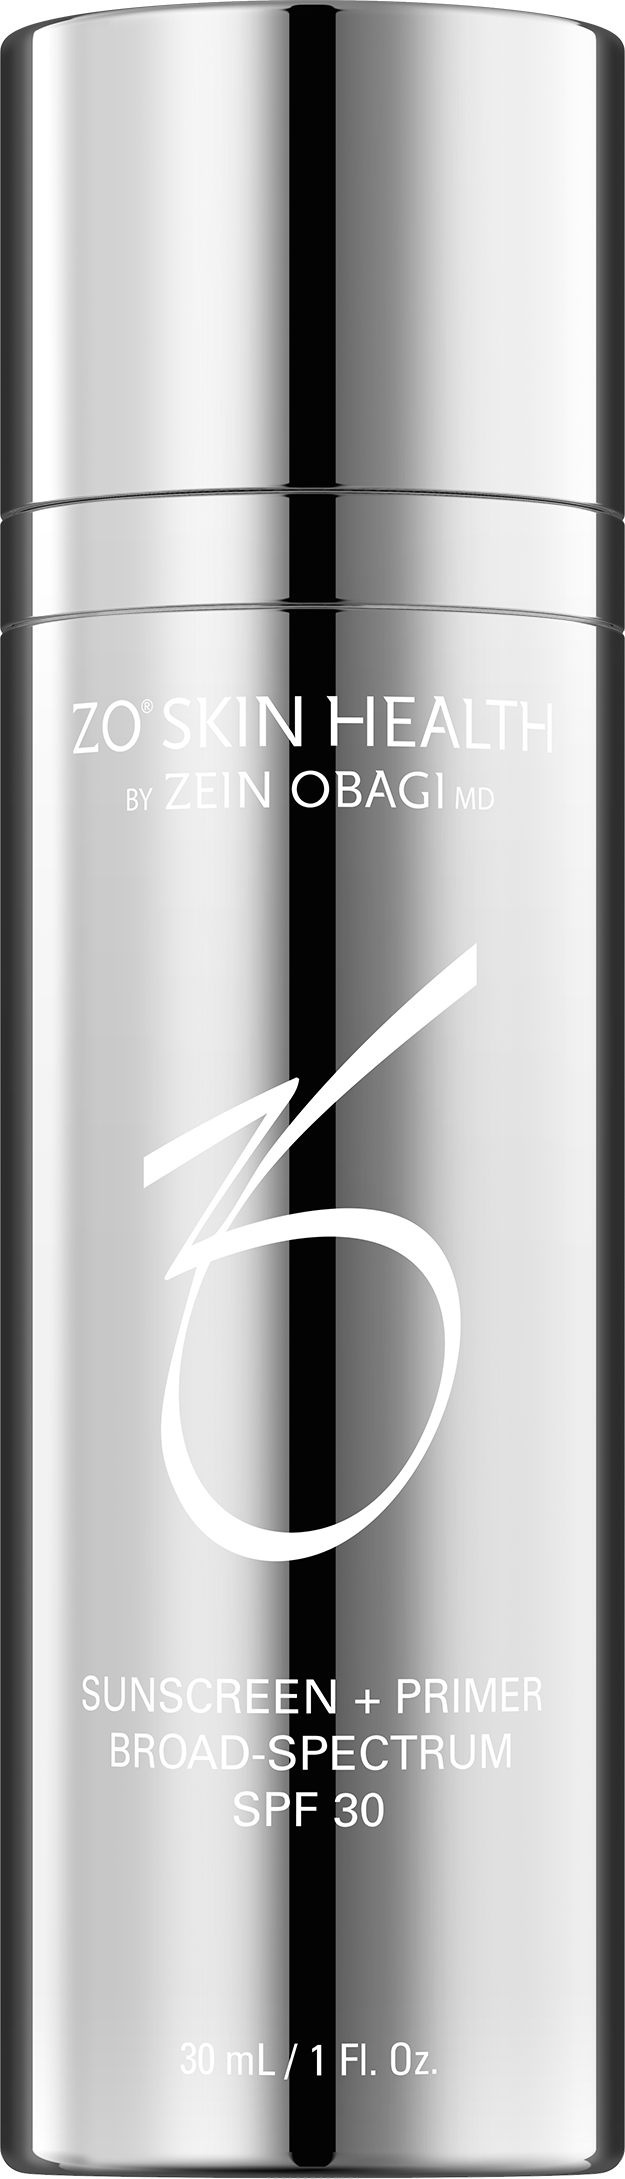 ZO® SKIN HEALTH SUNSCREEN+PRIMER SPF 30